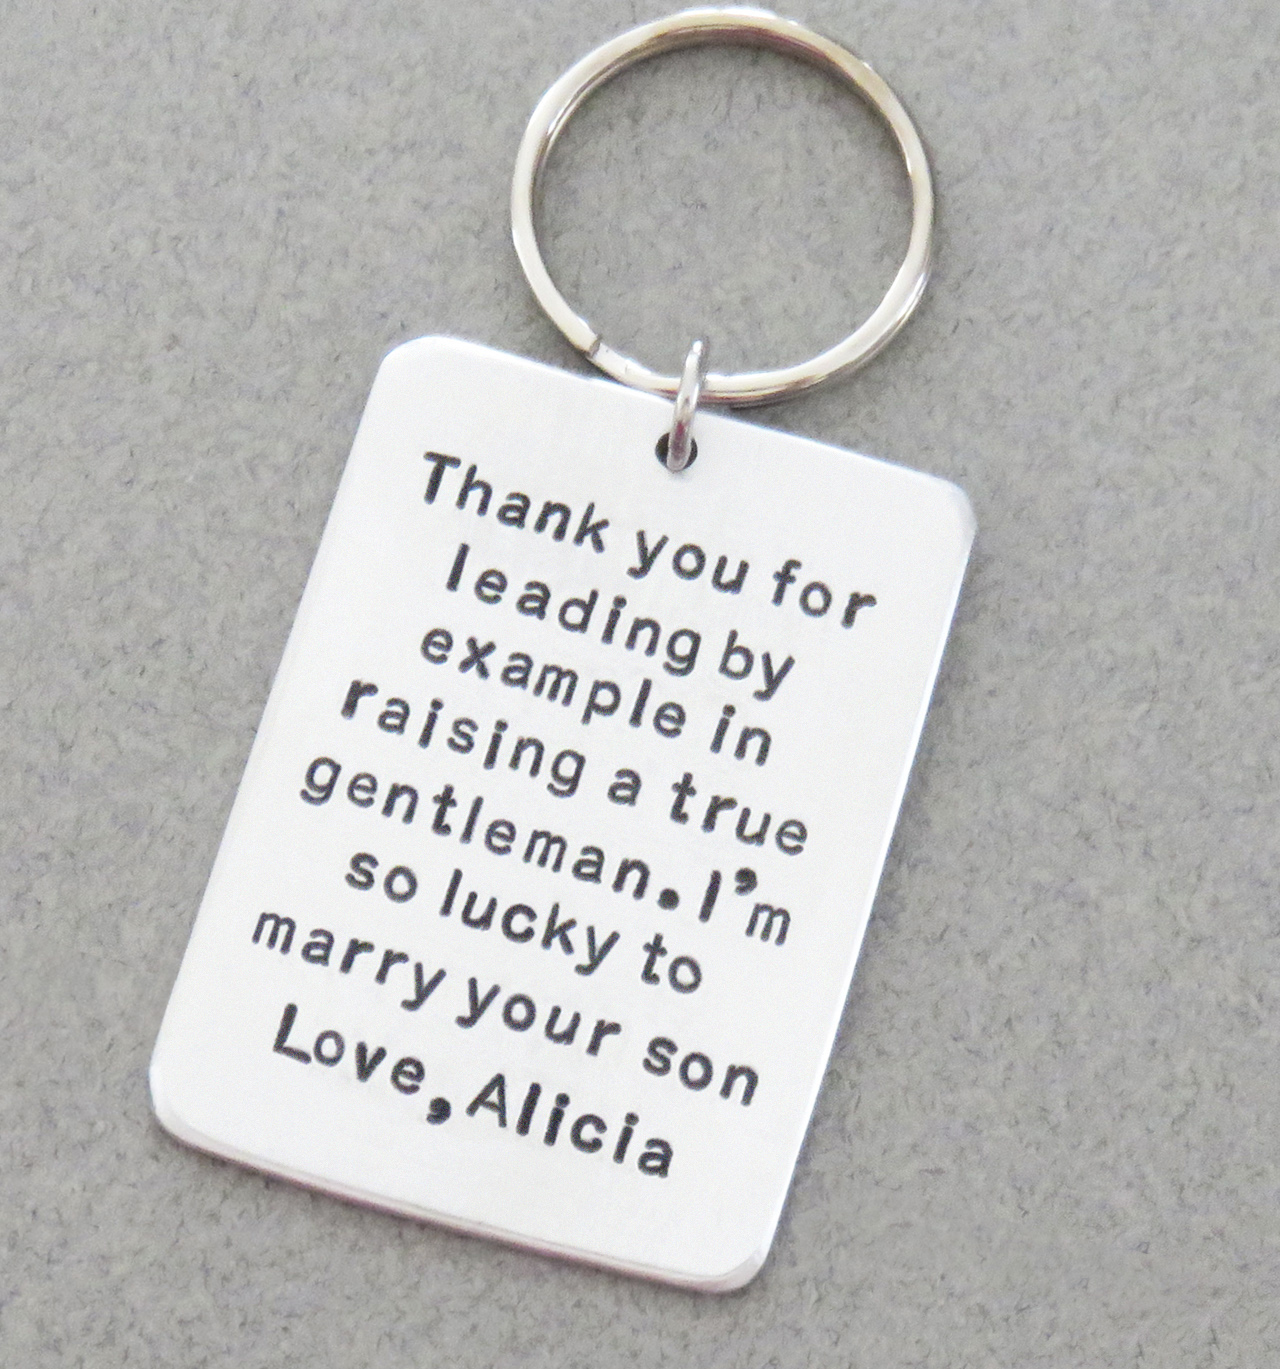 Stamped personalized wedding gifts, jewelry, key chains, funny cards ...